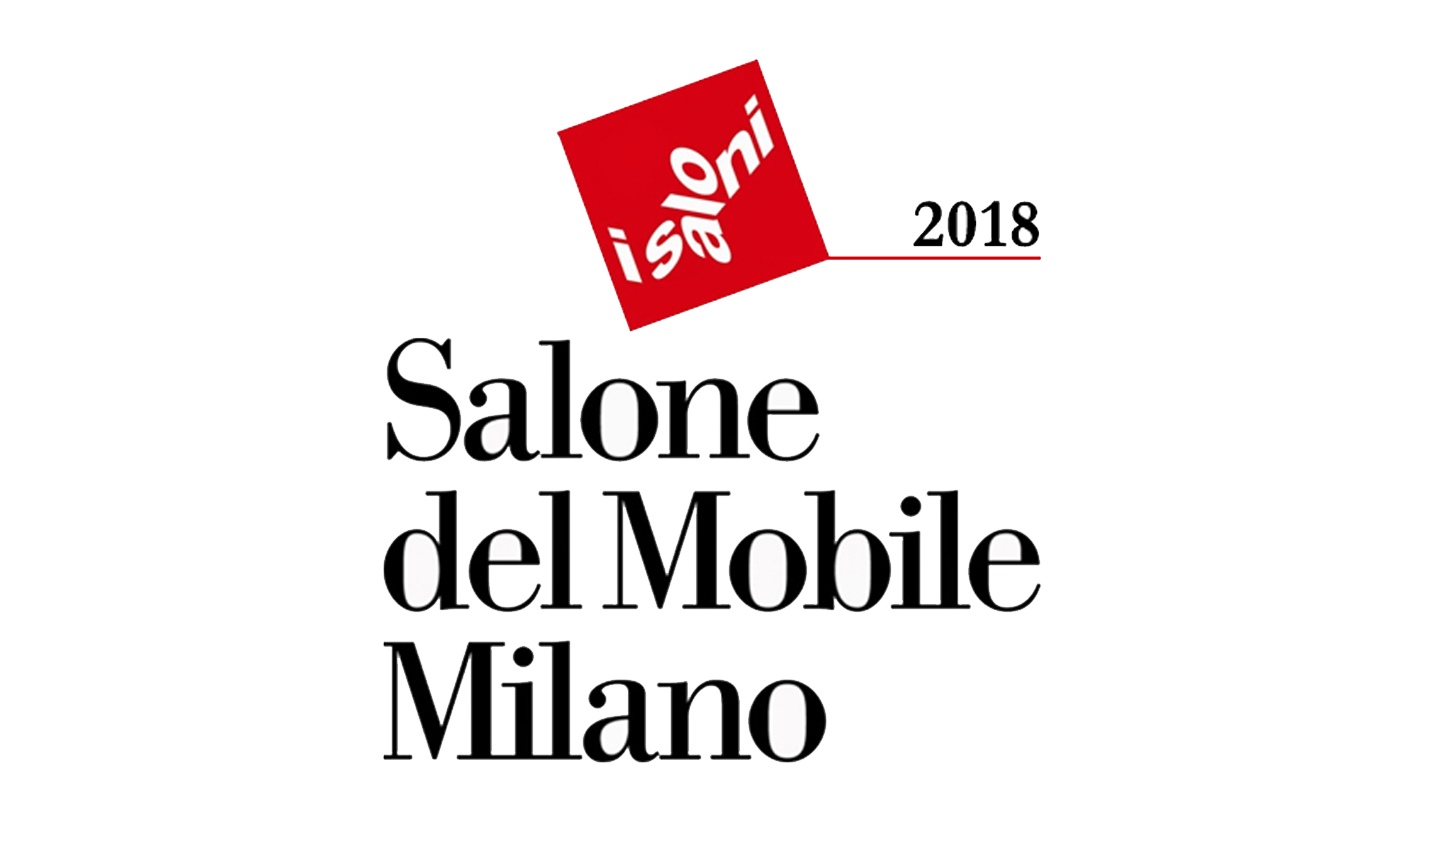 Nowe trendy z Salone del Mobile 2018